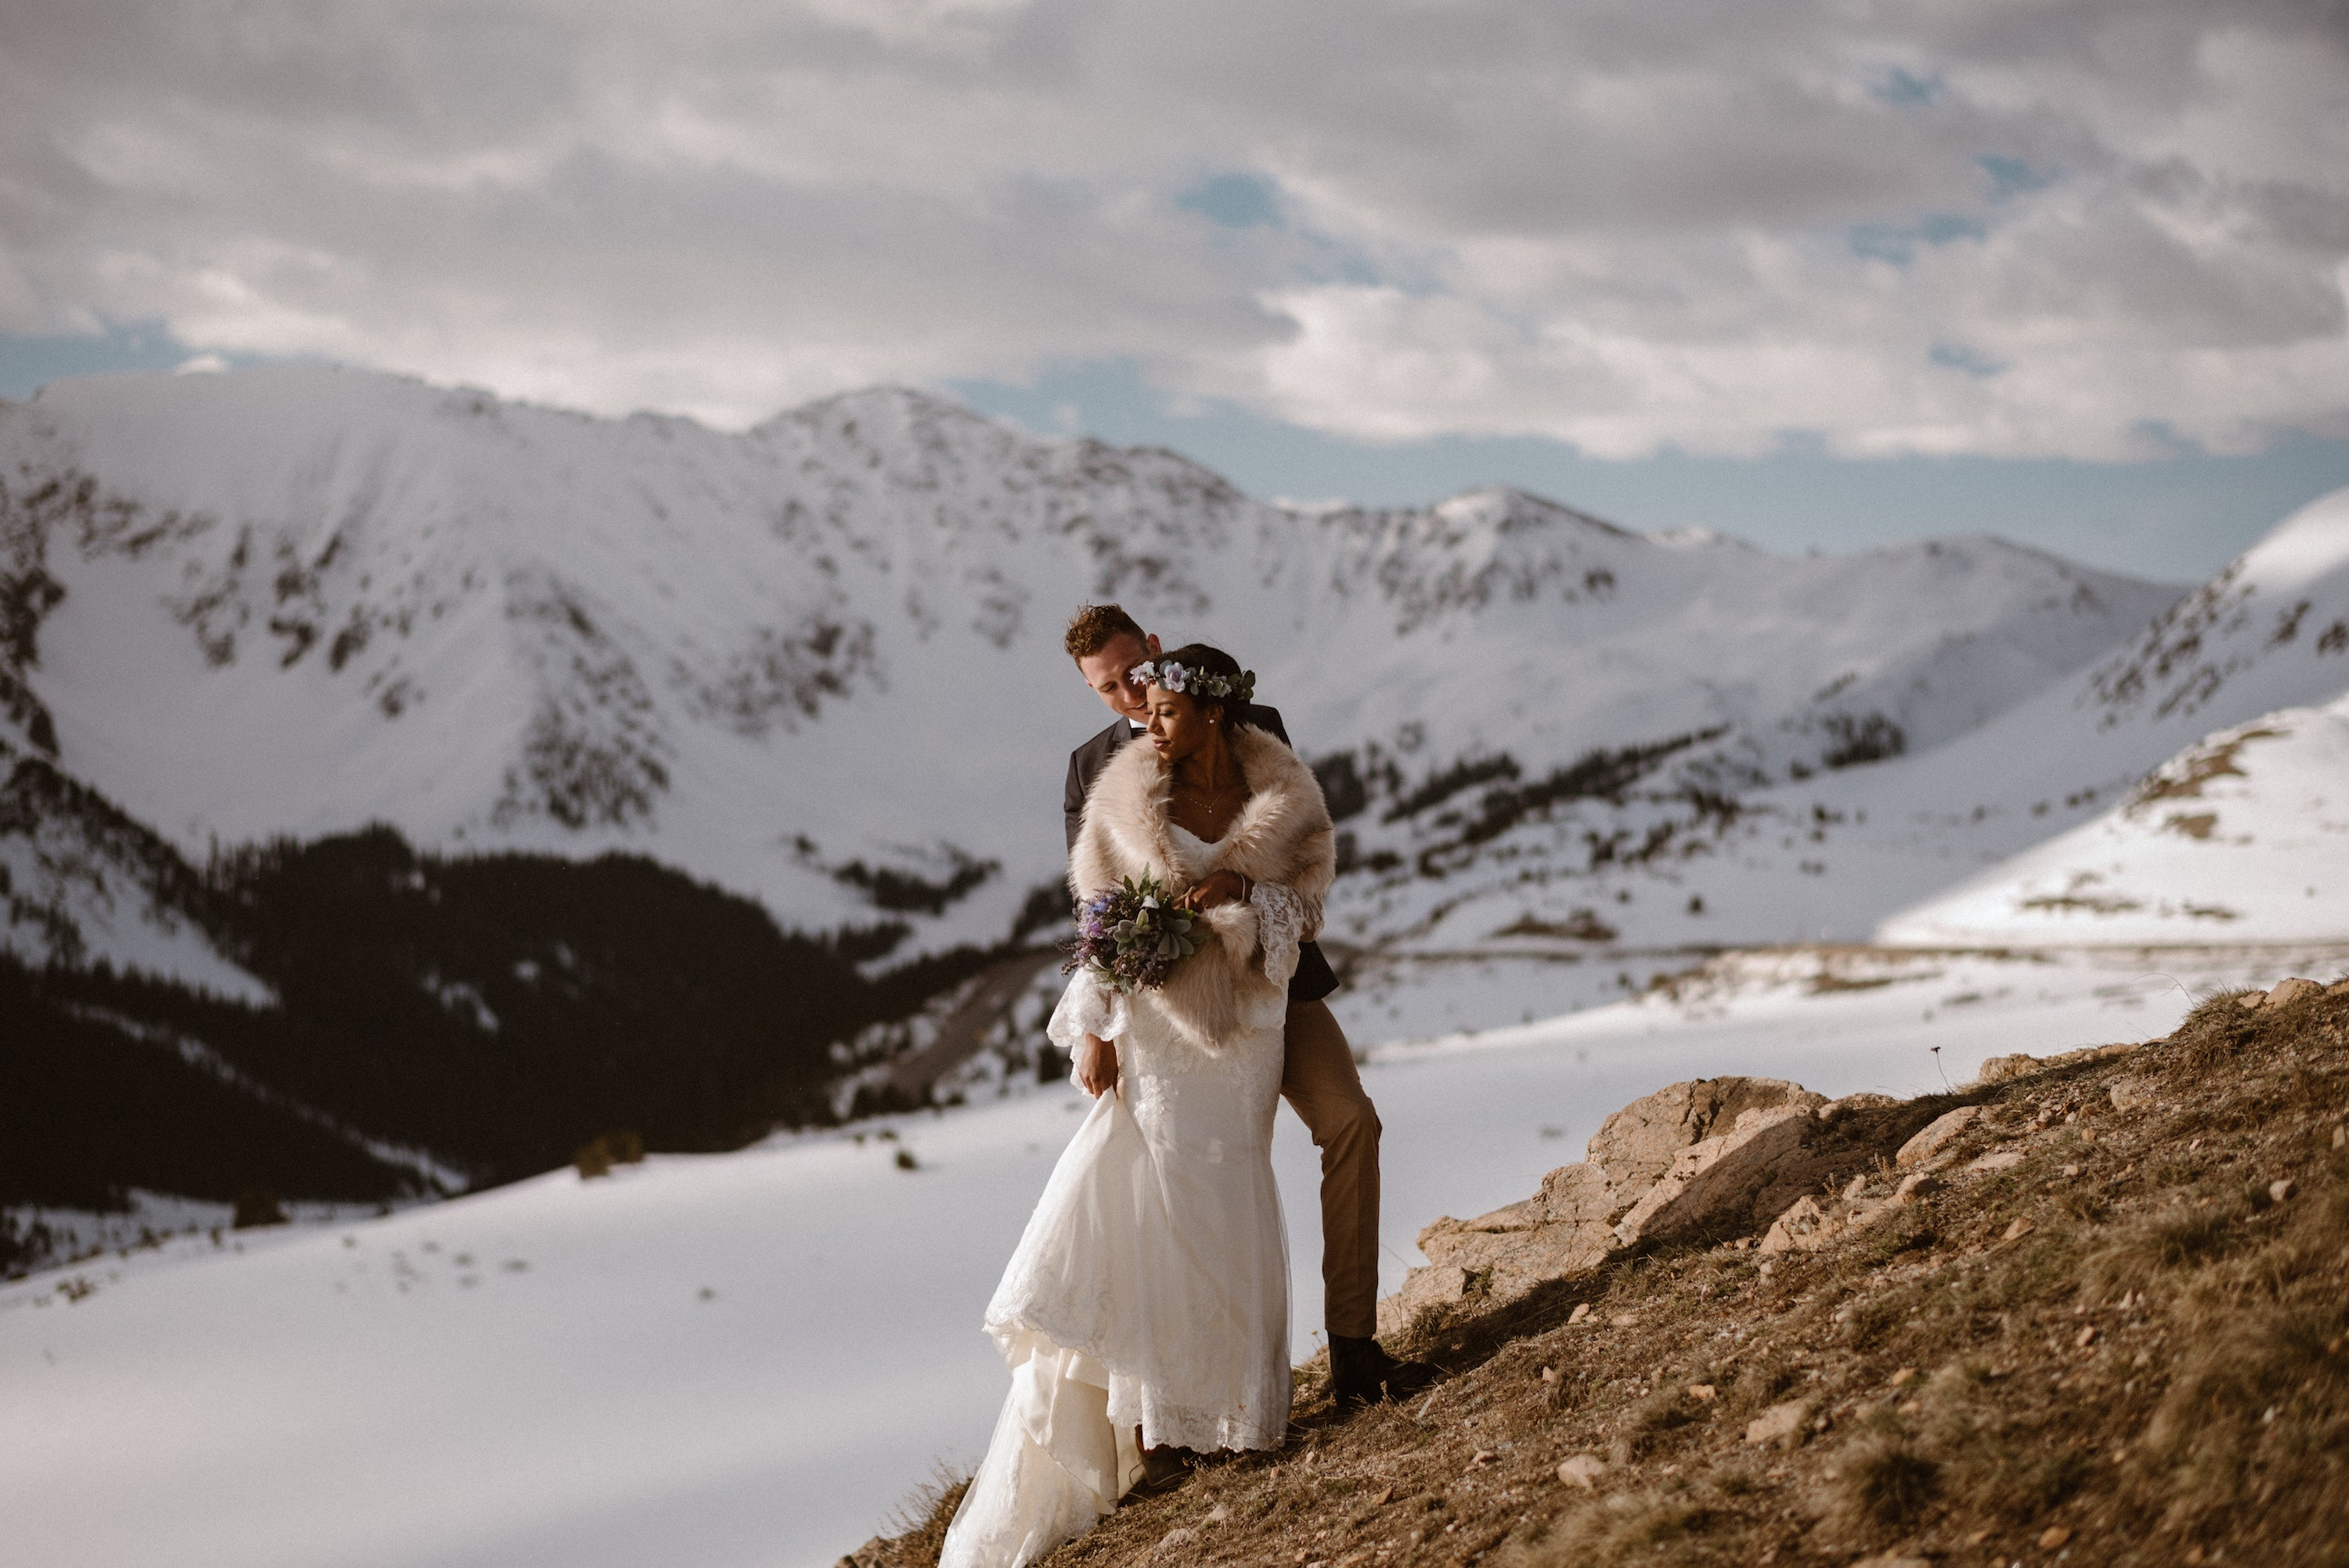 Bride and groom on snowy mountain